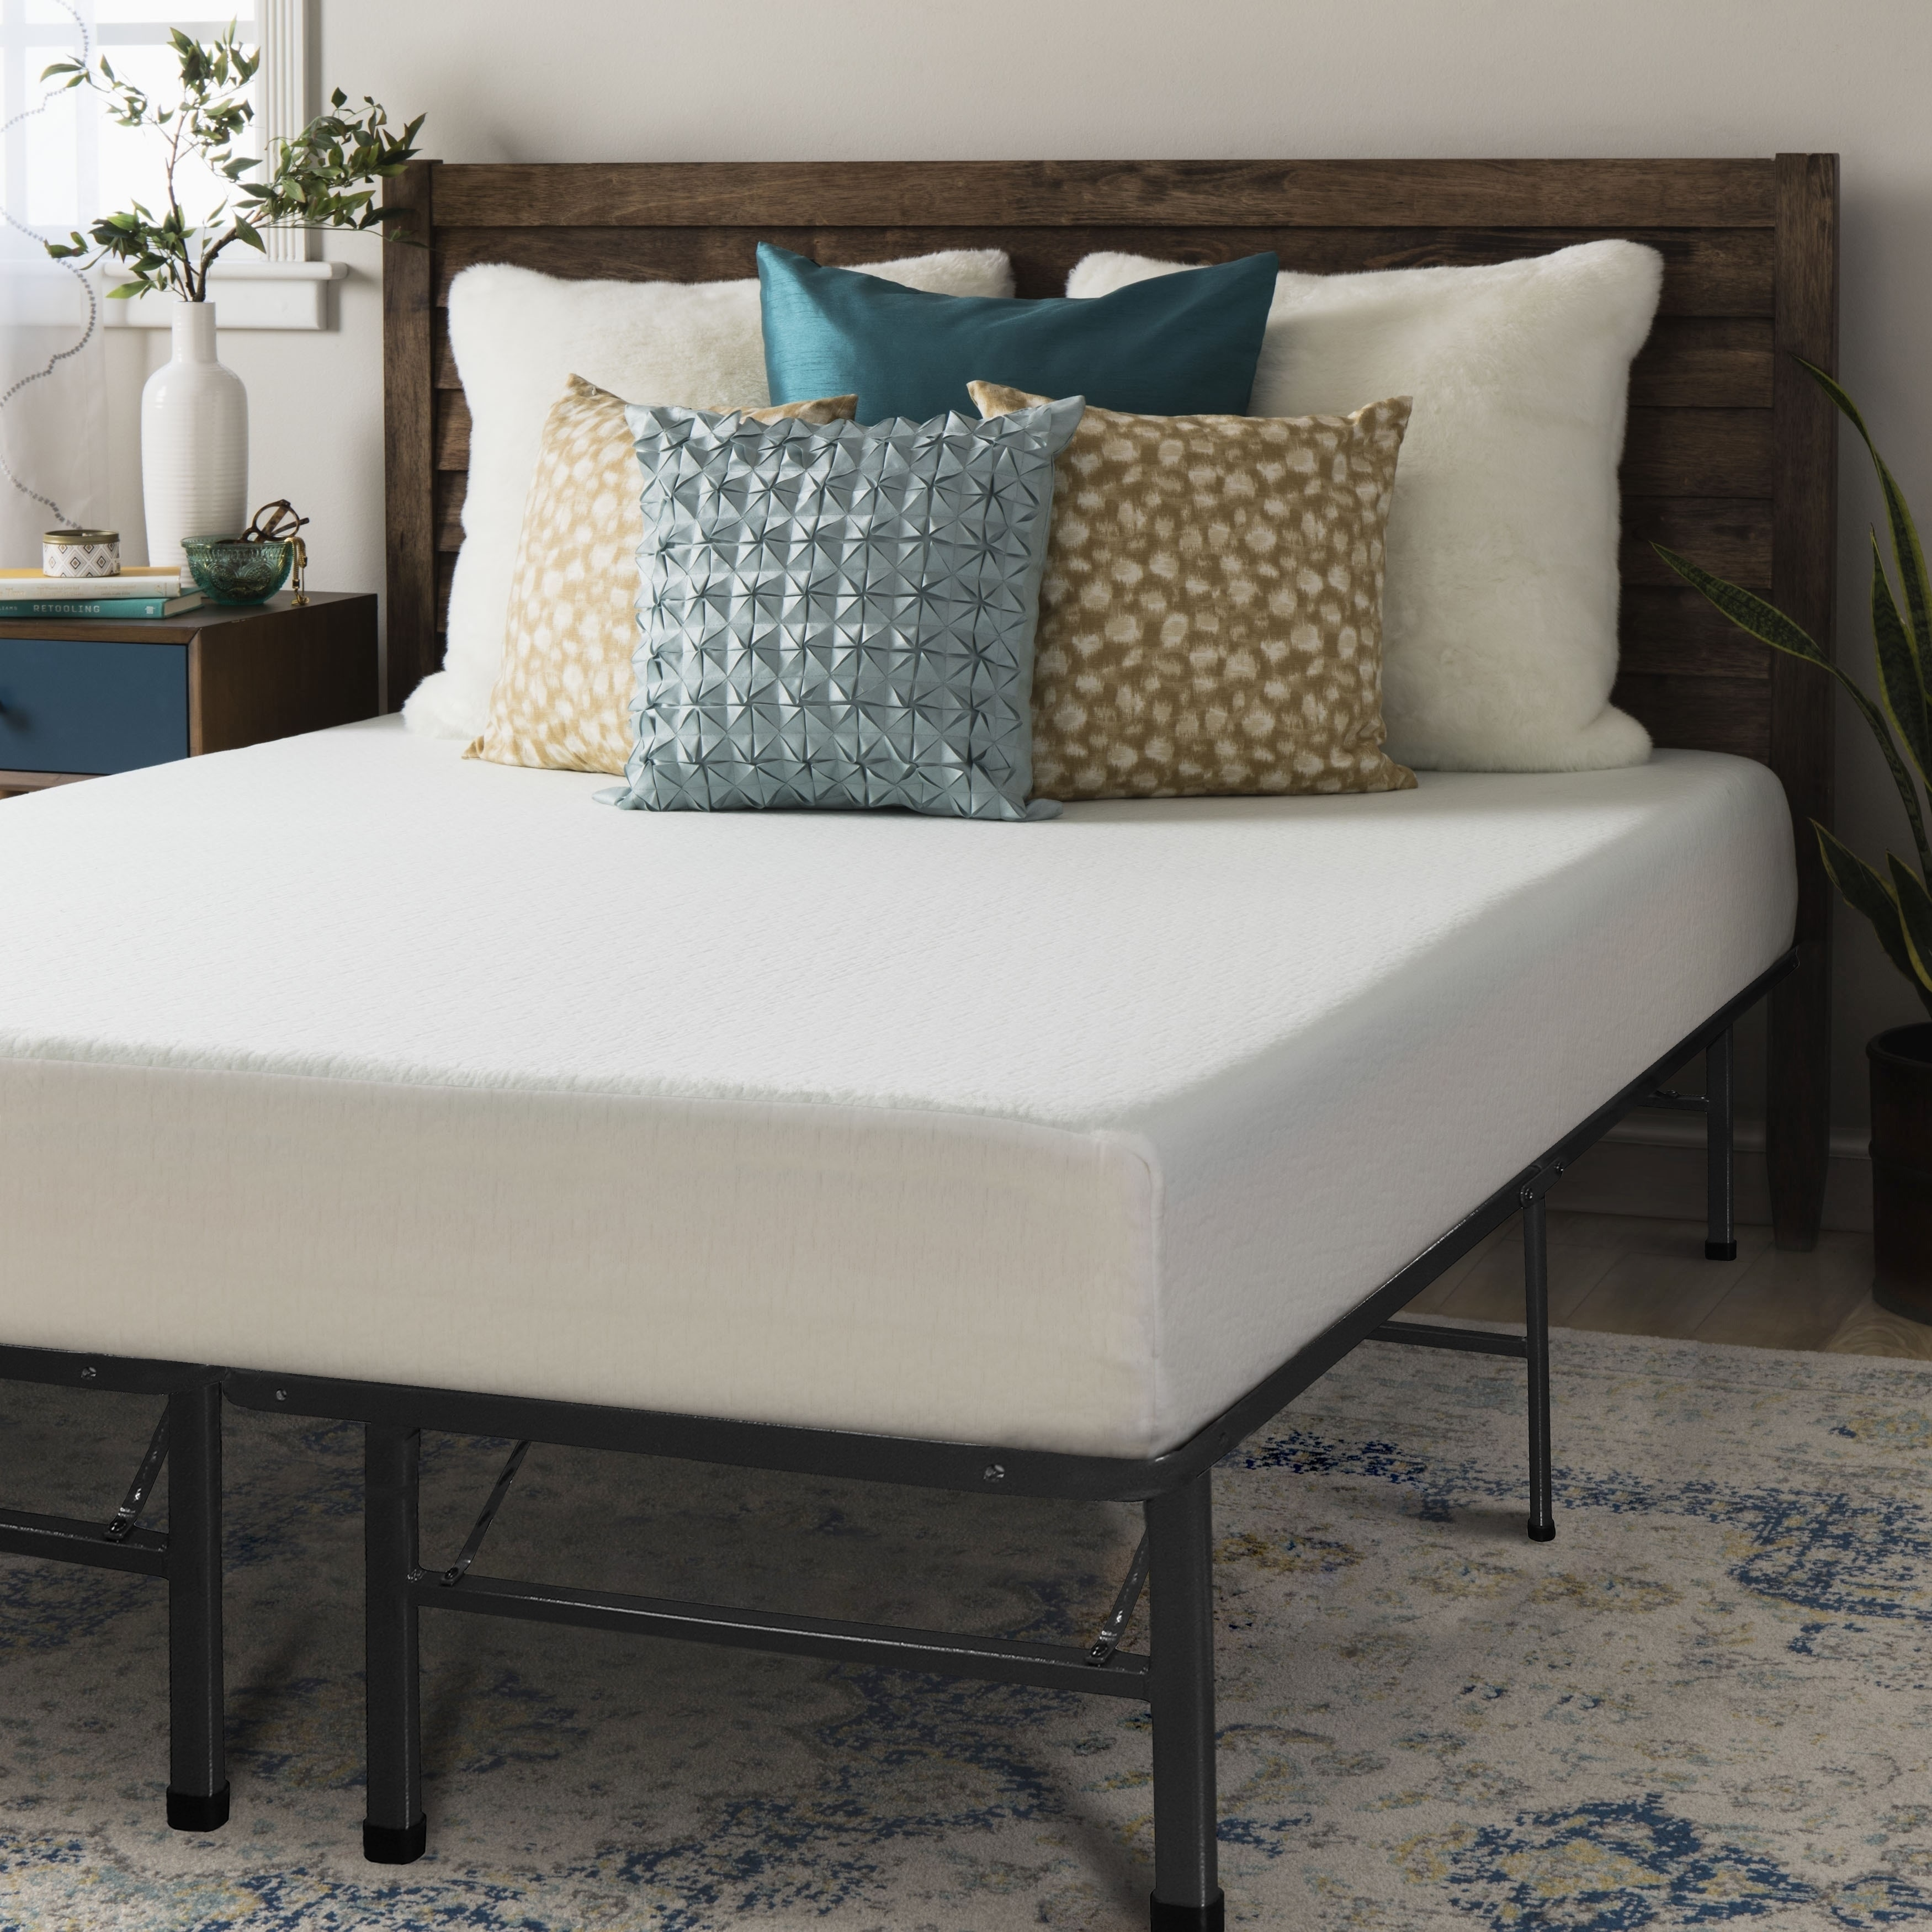 Crown Comfort 8-inch Queen-size Bed Frame and Memory Foam...